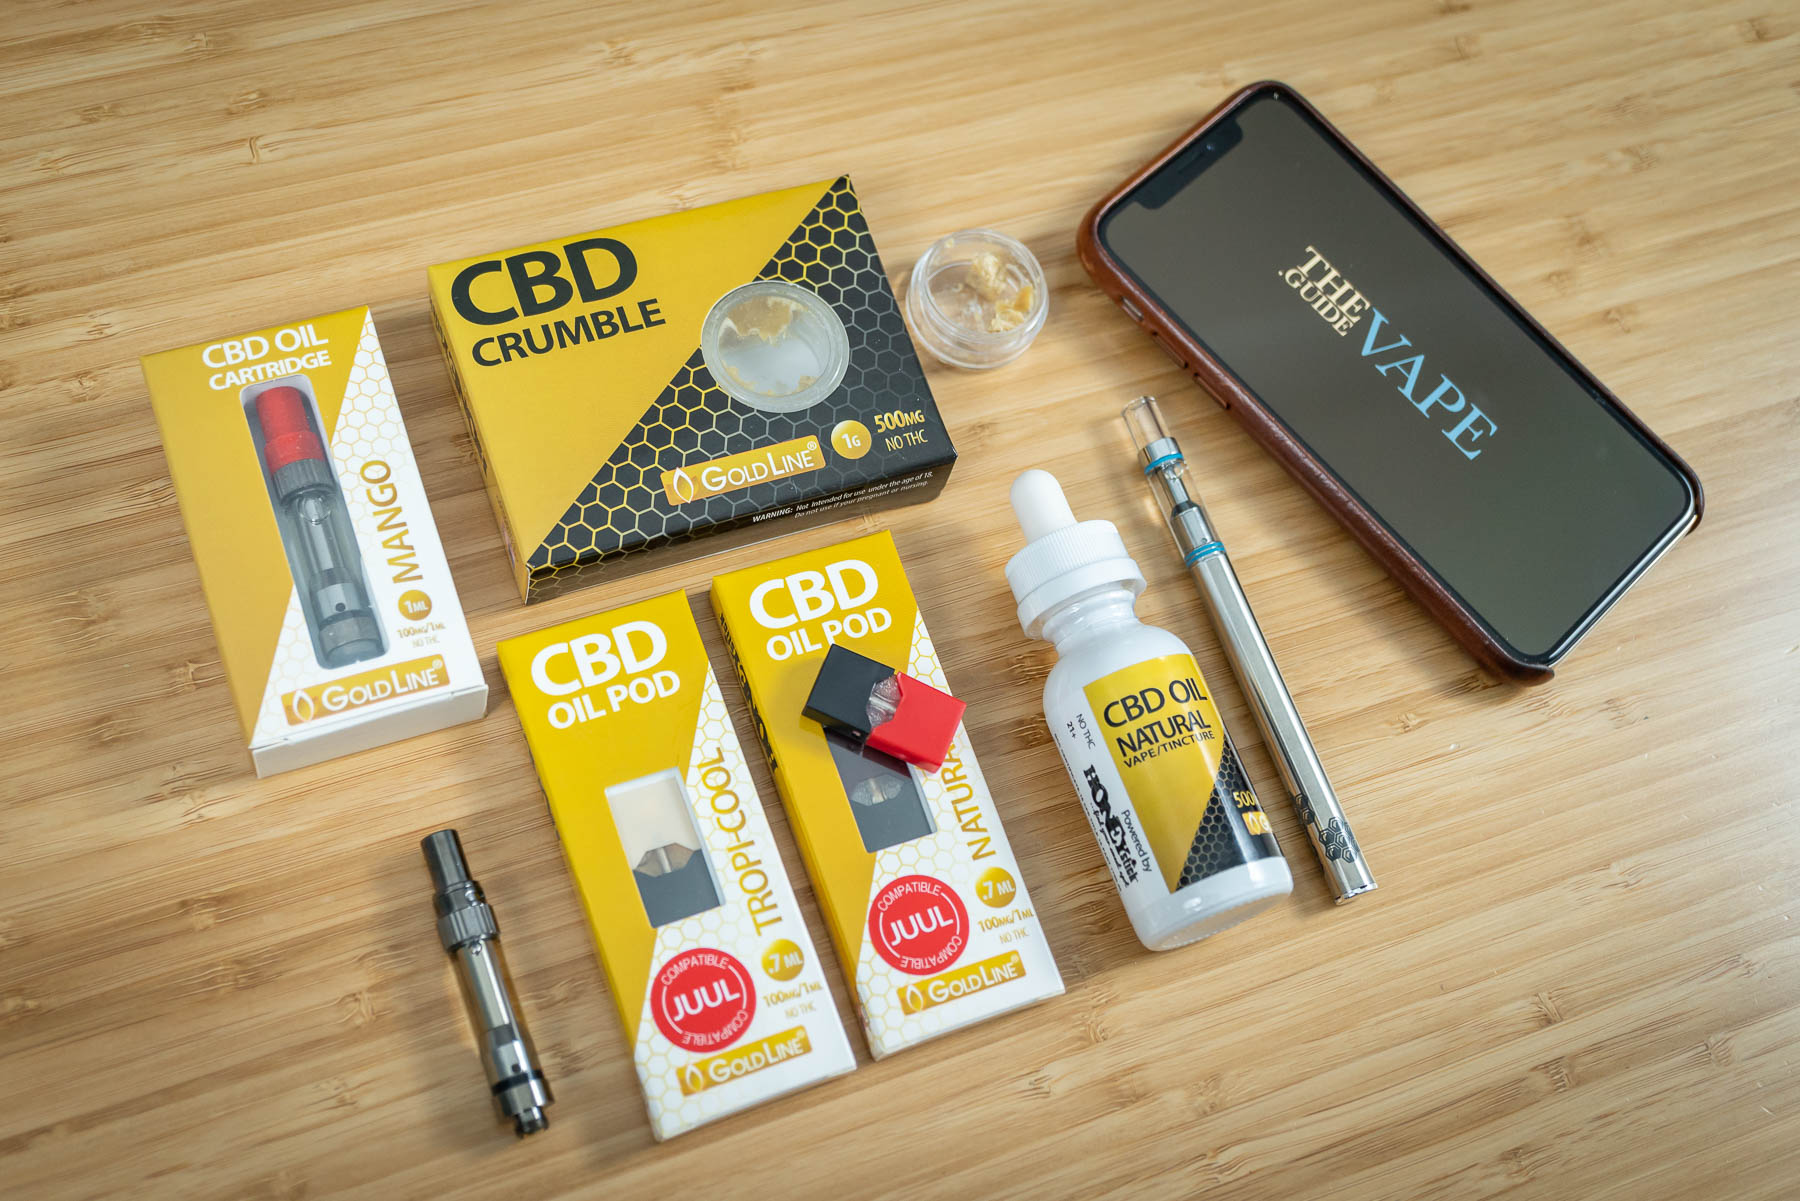 Gold Line CBD Oil Review and Coupon Code Product Line